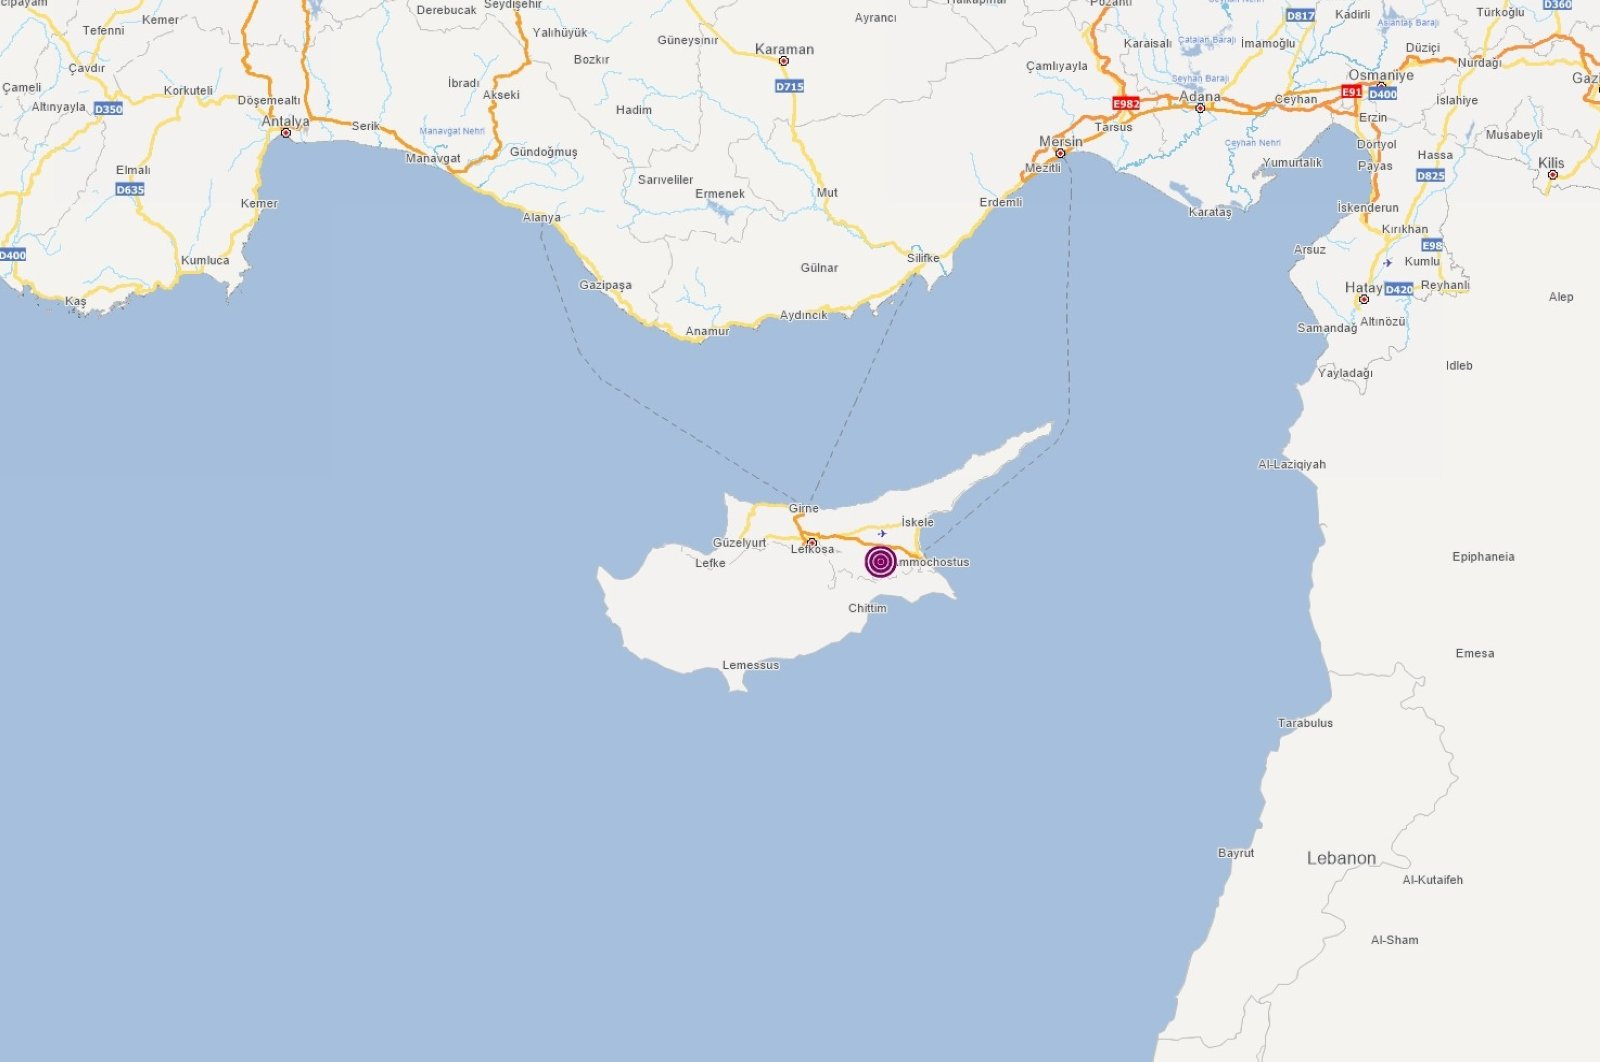 A screenshot from Turkey's Disaster and Emergency Management Authority (AFAD) shows the epicenter of the earthquake on the island of Cyprus, Jan. 21, 2021.